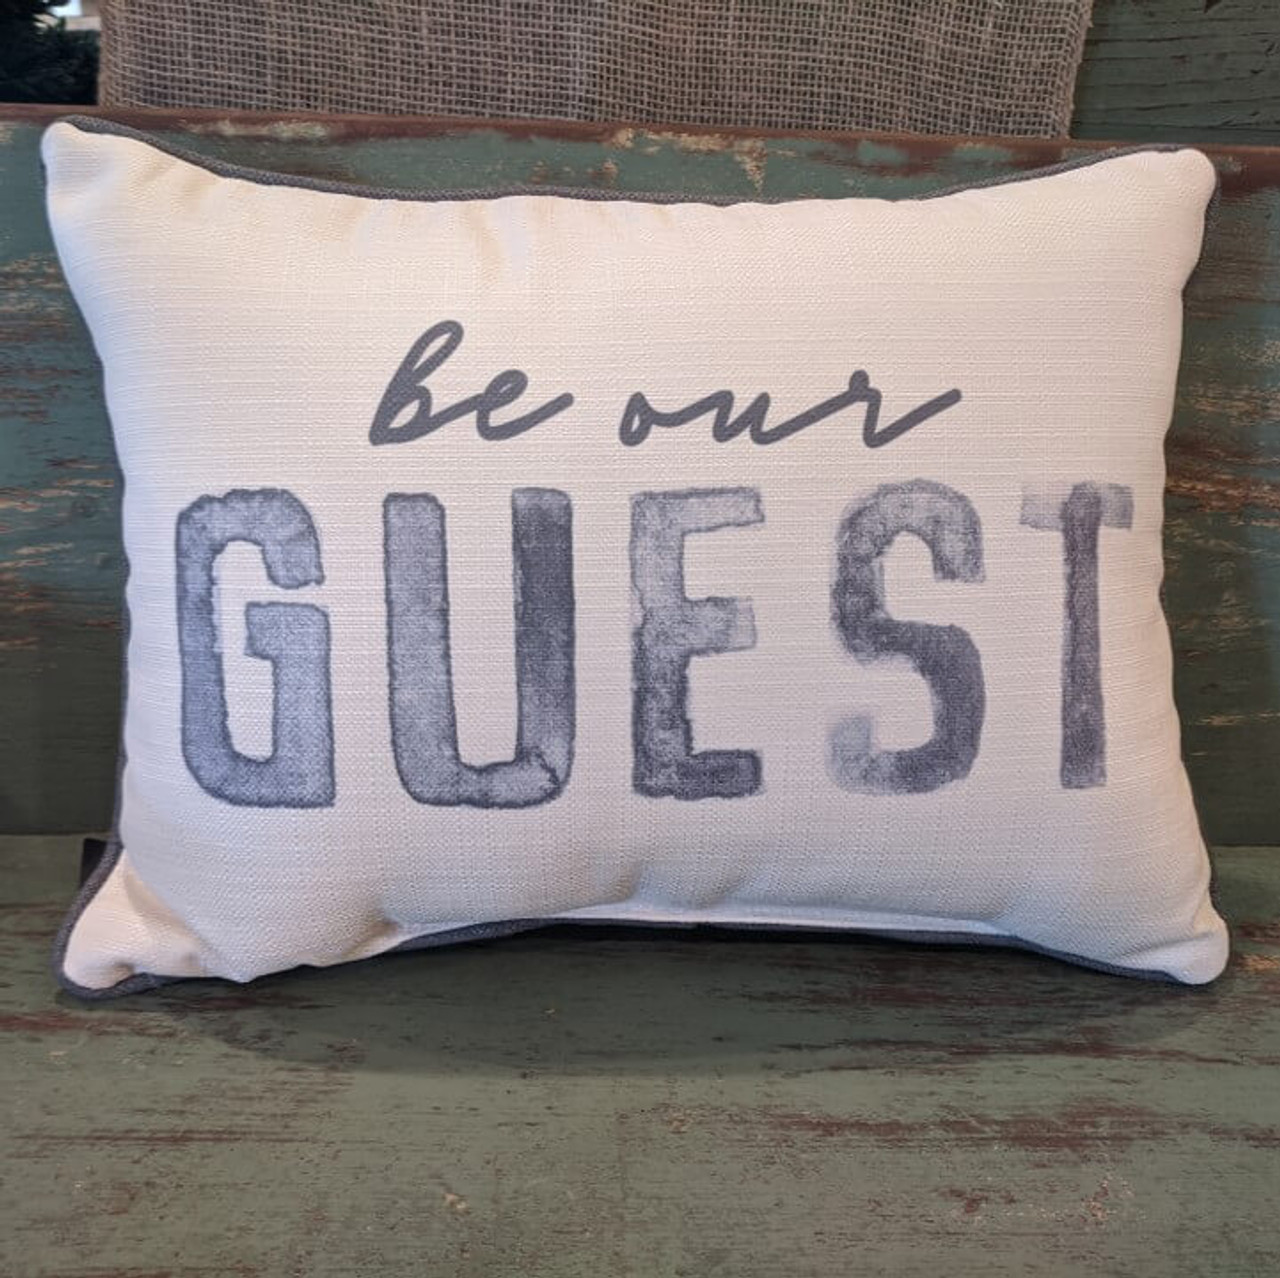 """The perfect way to cozy up any space! """"Be our guest"""" sentiment is dyed directly into the fabric, so it won't peel or crack; grey piping around the edge for an extra pop! Made from a soft yet durable polyester fabric, your pillow will arrive stuffed with poly-fill and sewn shut. Approx. 20"""" W x 14"""" H; machine washable in cold water, delicate cycle- fluff, air dry flat."""